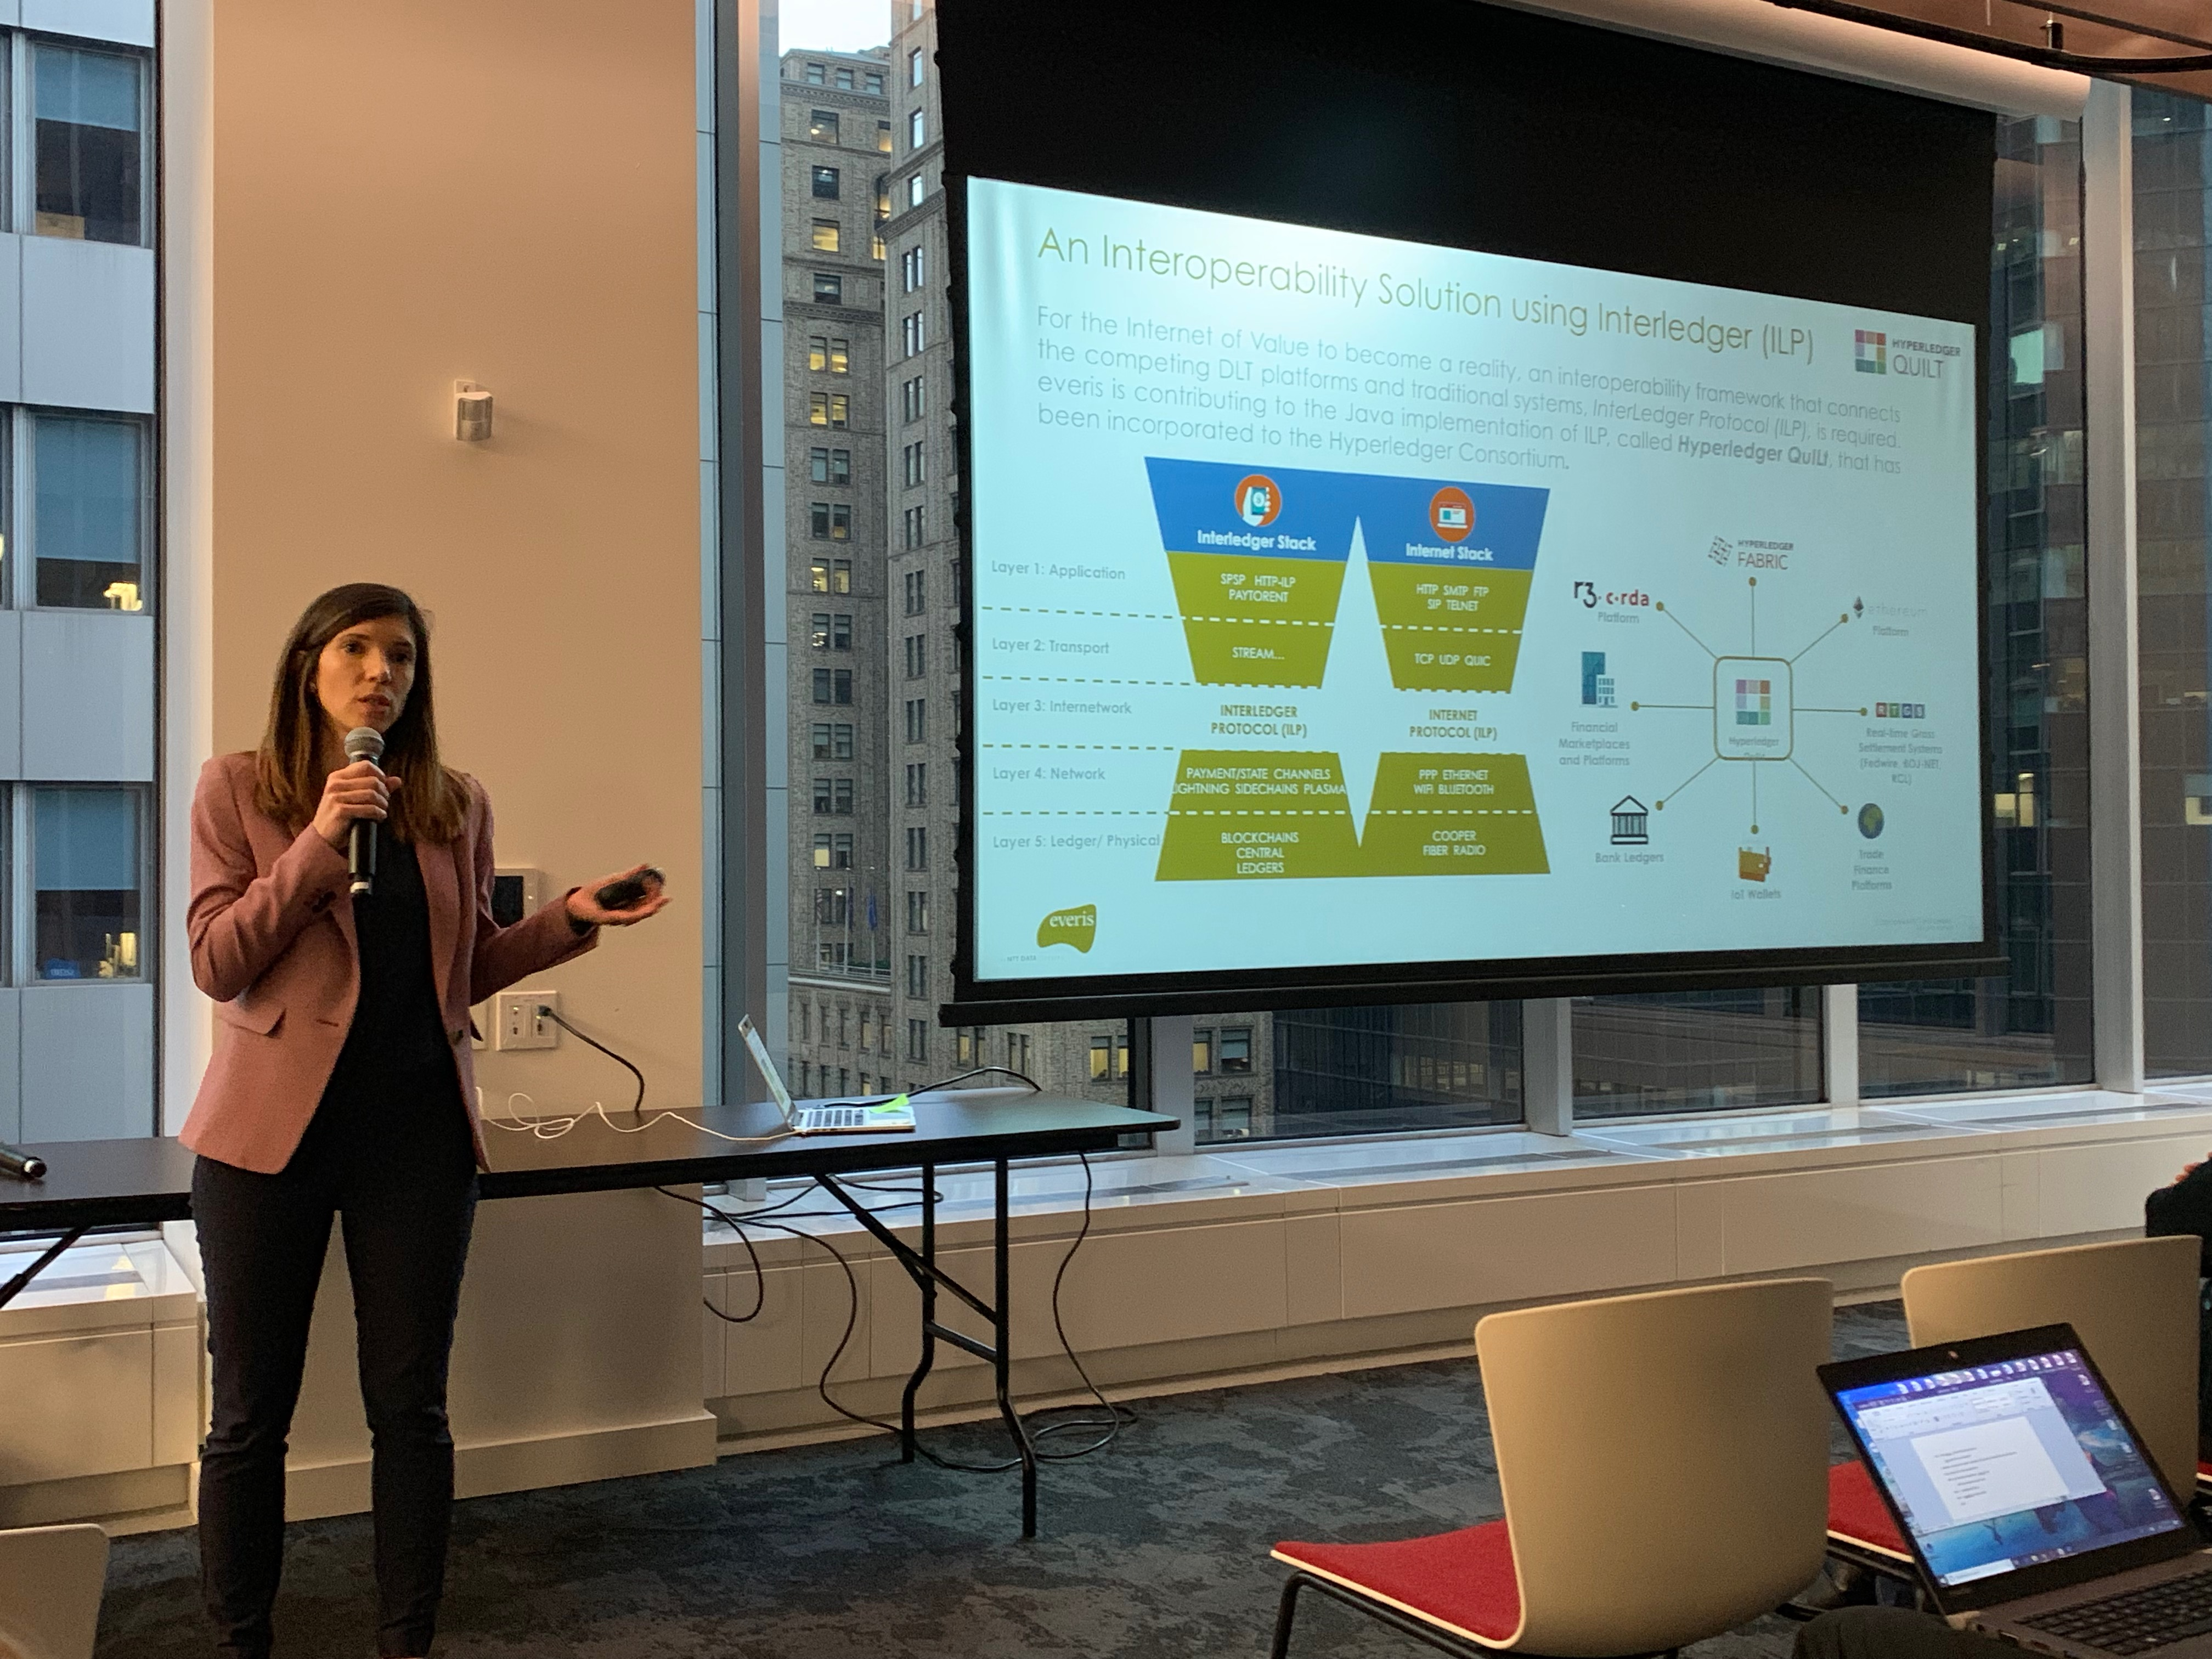 Helena Marques presenting the current status of the Hyperledger QuILt and InterLedger Protocol initiatives